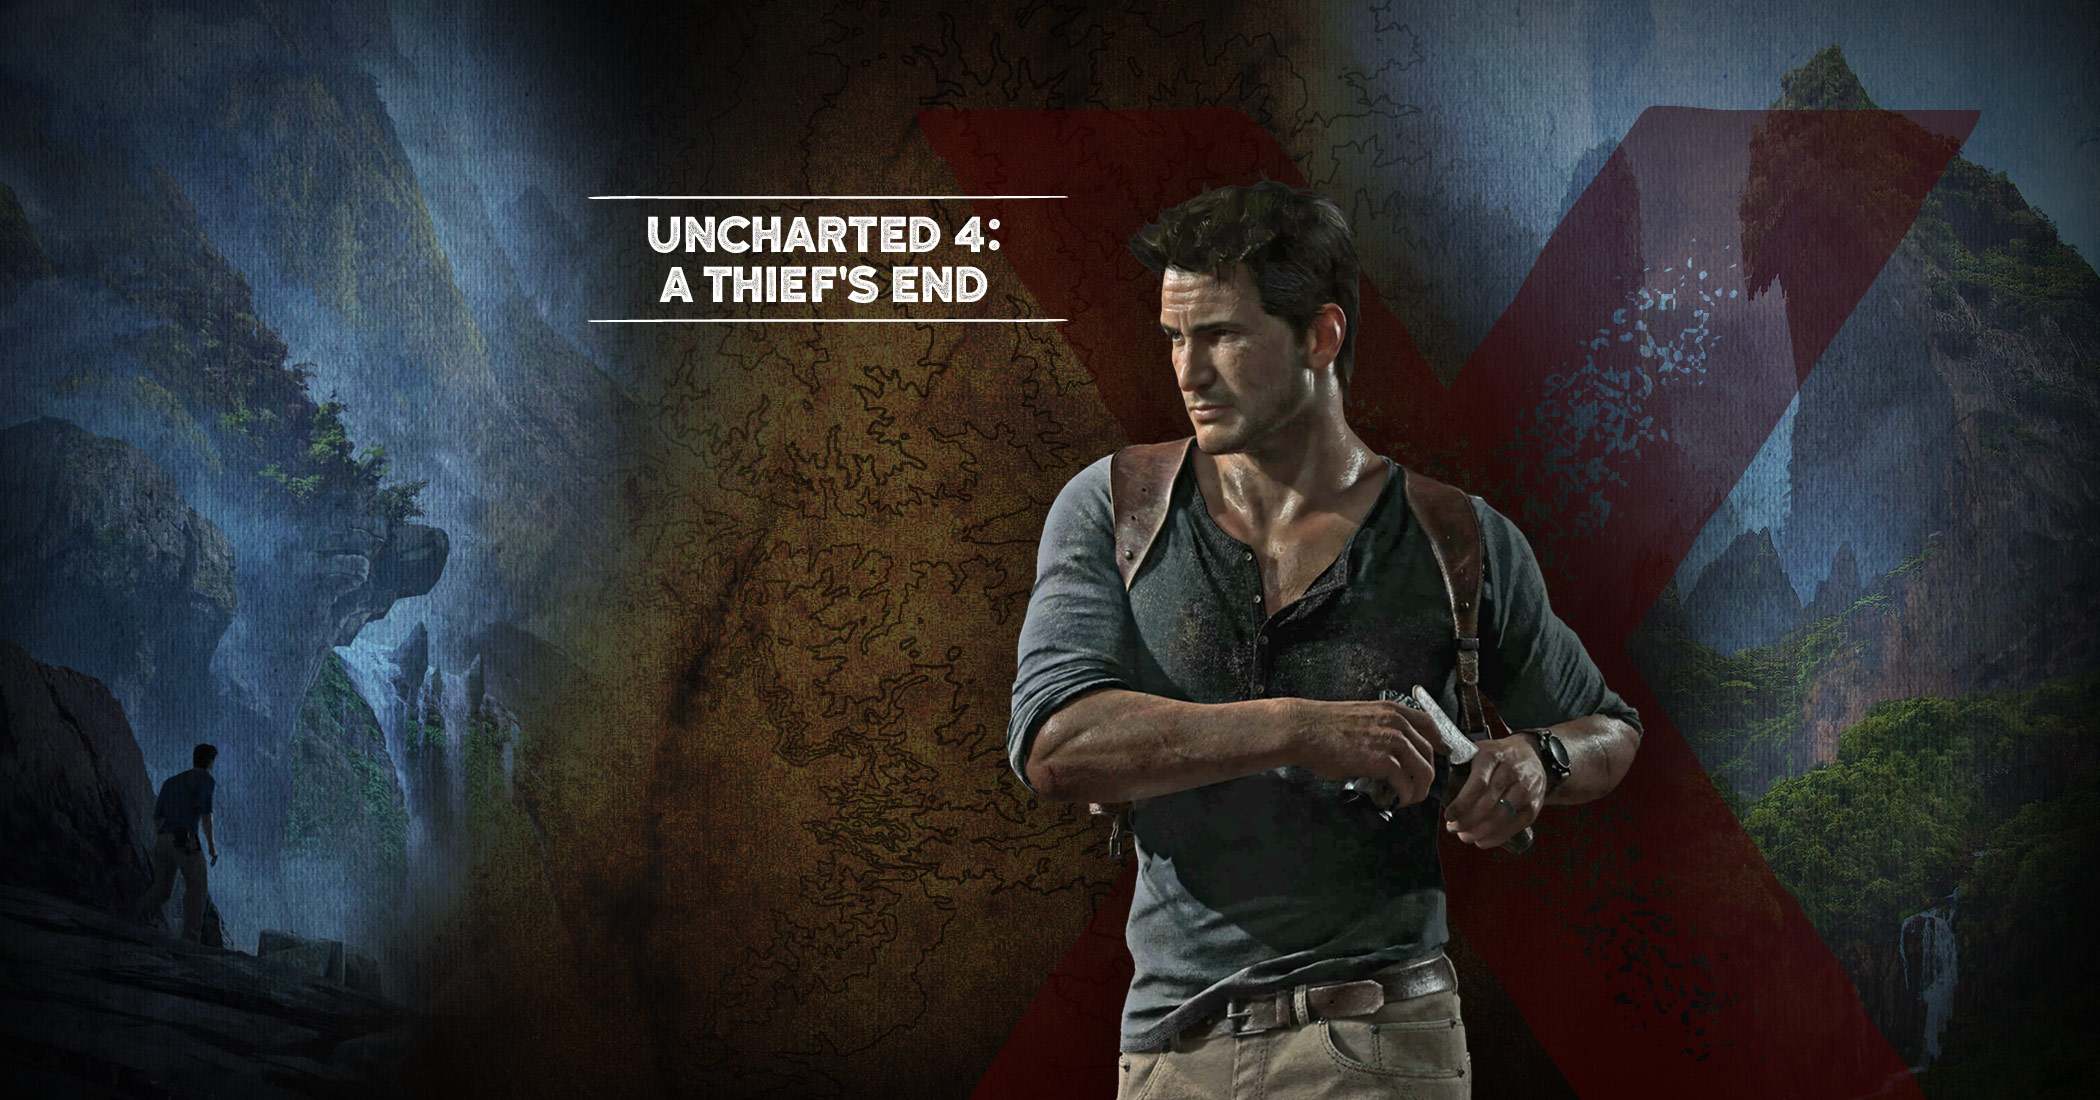 Uncharted 4 a thief 39 s end graces gi feb 2015 issue cover for Complete the mural uncharted 3